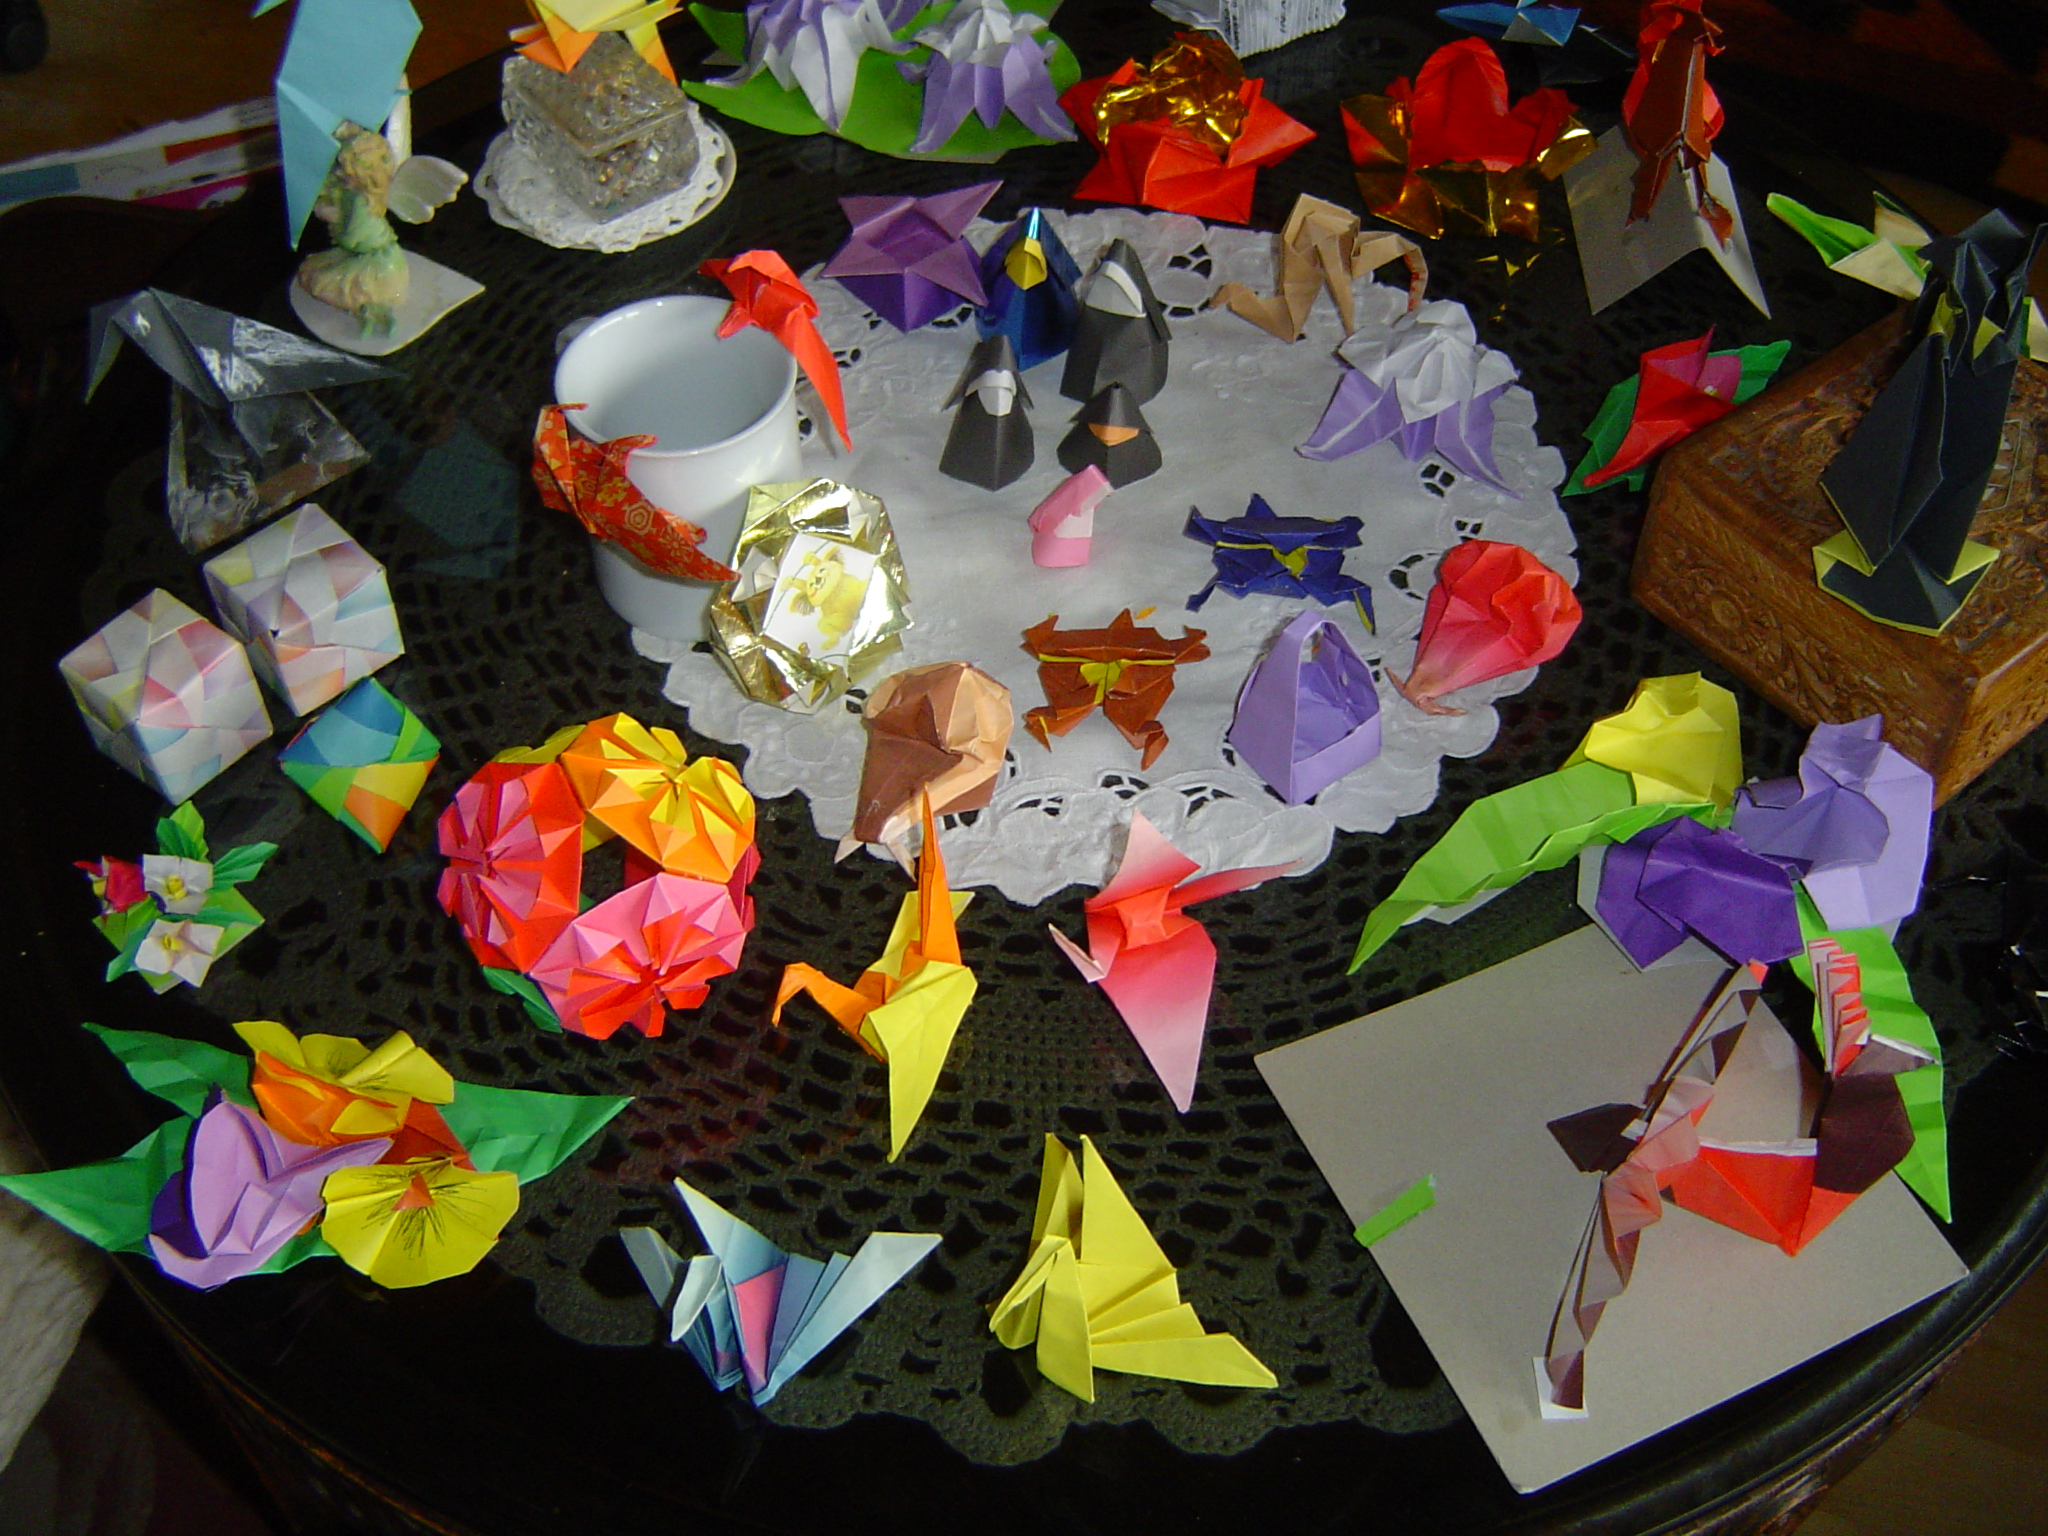 Origami paper art composition